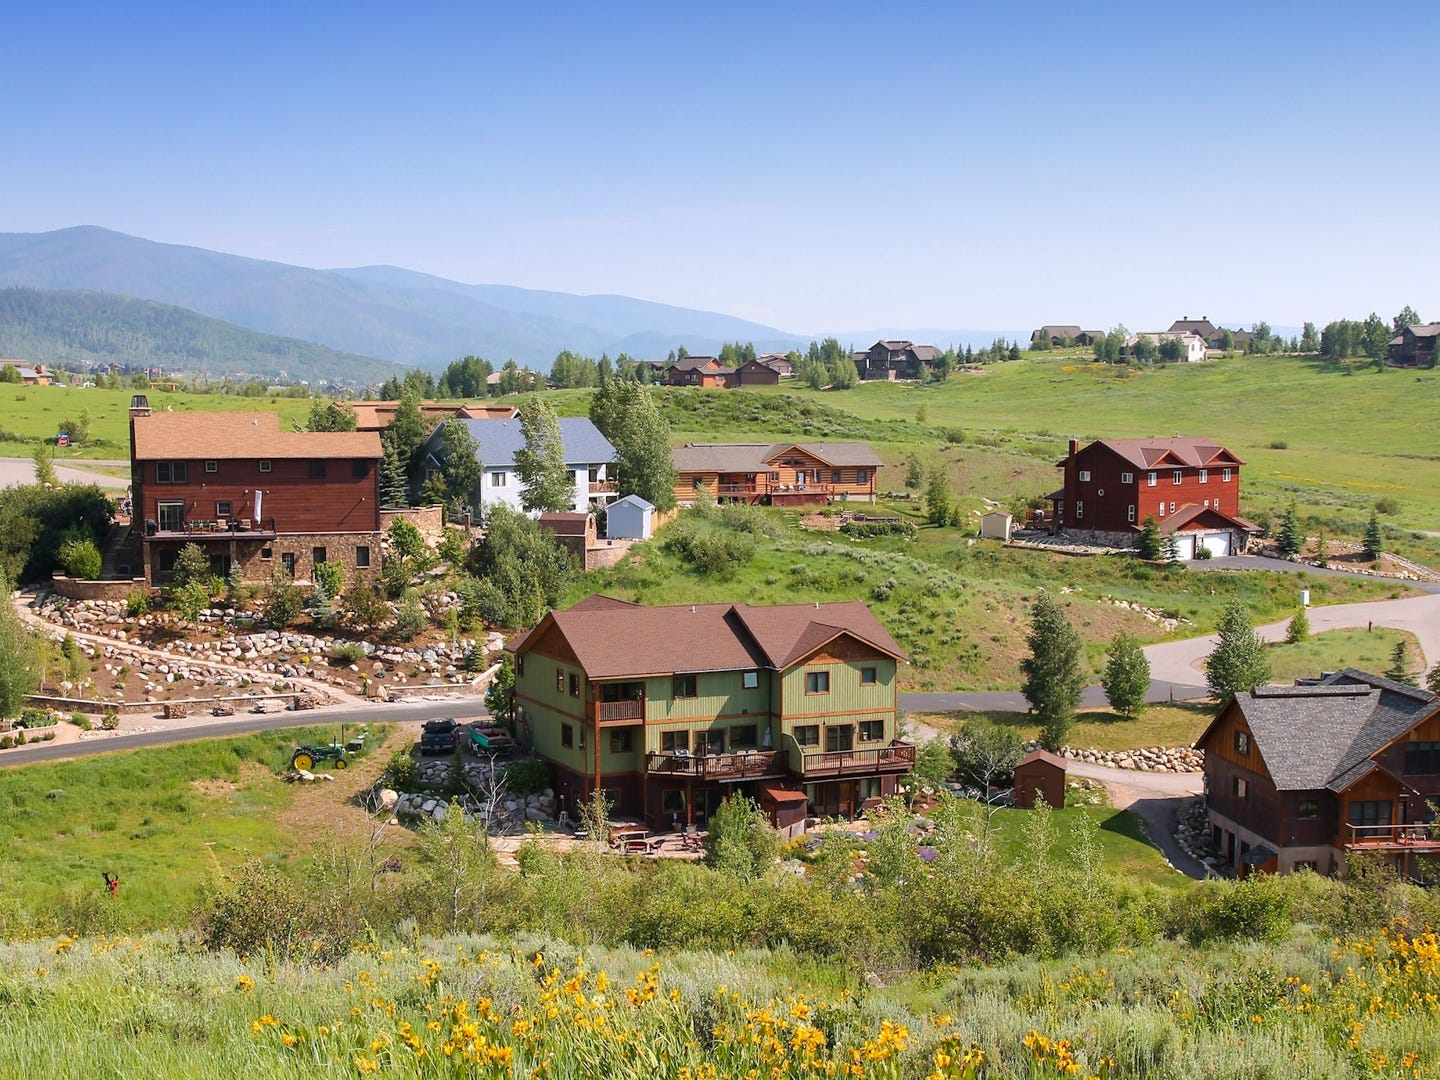 Colorado: Nature lovers flock to Steamboat Springs year-round to enjoy the peace and quiet of the mountain town. In the warm months, take a dip in the Strawberry Park Hot Springs, hike to Fish Creek Falls or go biking through the area's parks. In the winter, Steamboat Springs is a popular ski destination thanks to the Steamboat Resort and Howelsen Hill. If outdoor activities aren't your thing, you can enjoy a concert at the Steamboat Symphony Orchestra or get cultured at the Steamboat Art Museum. Strawberry Park Hot Springs: $15 to $20.